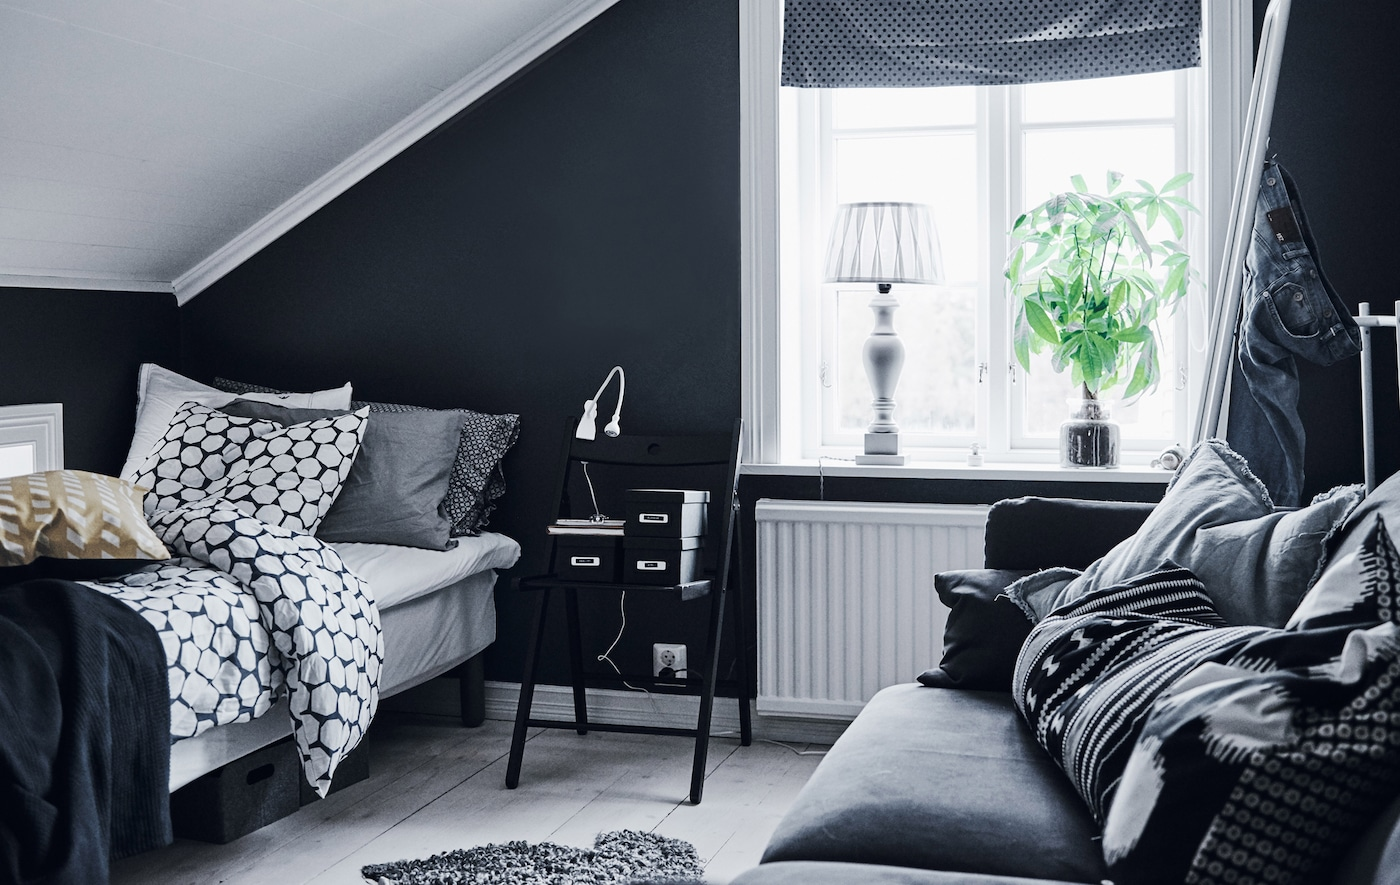 Ideas for personal and practical teen bedrooms